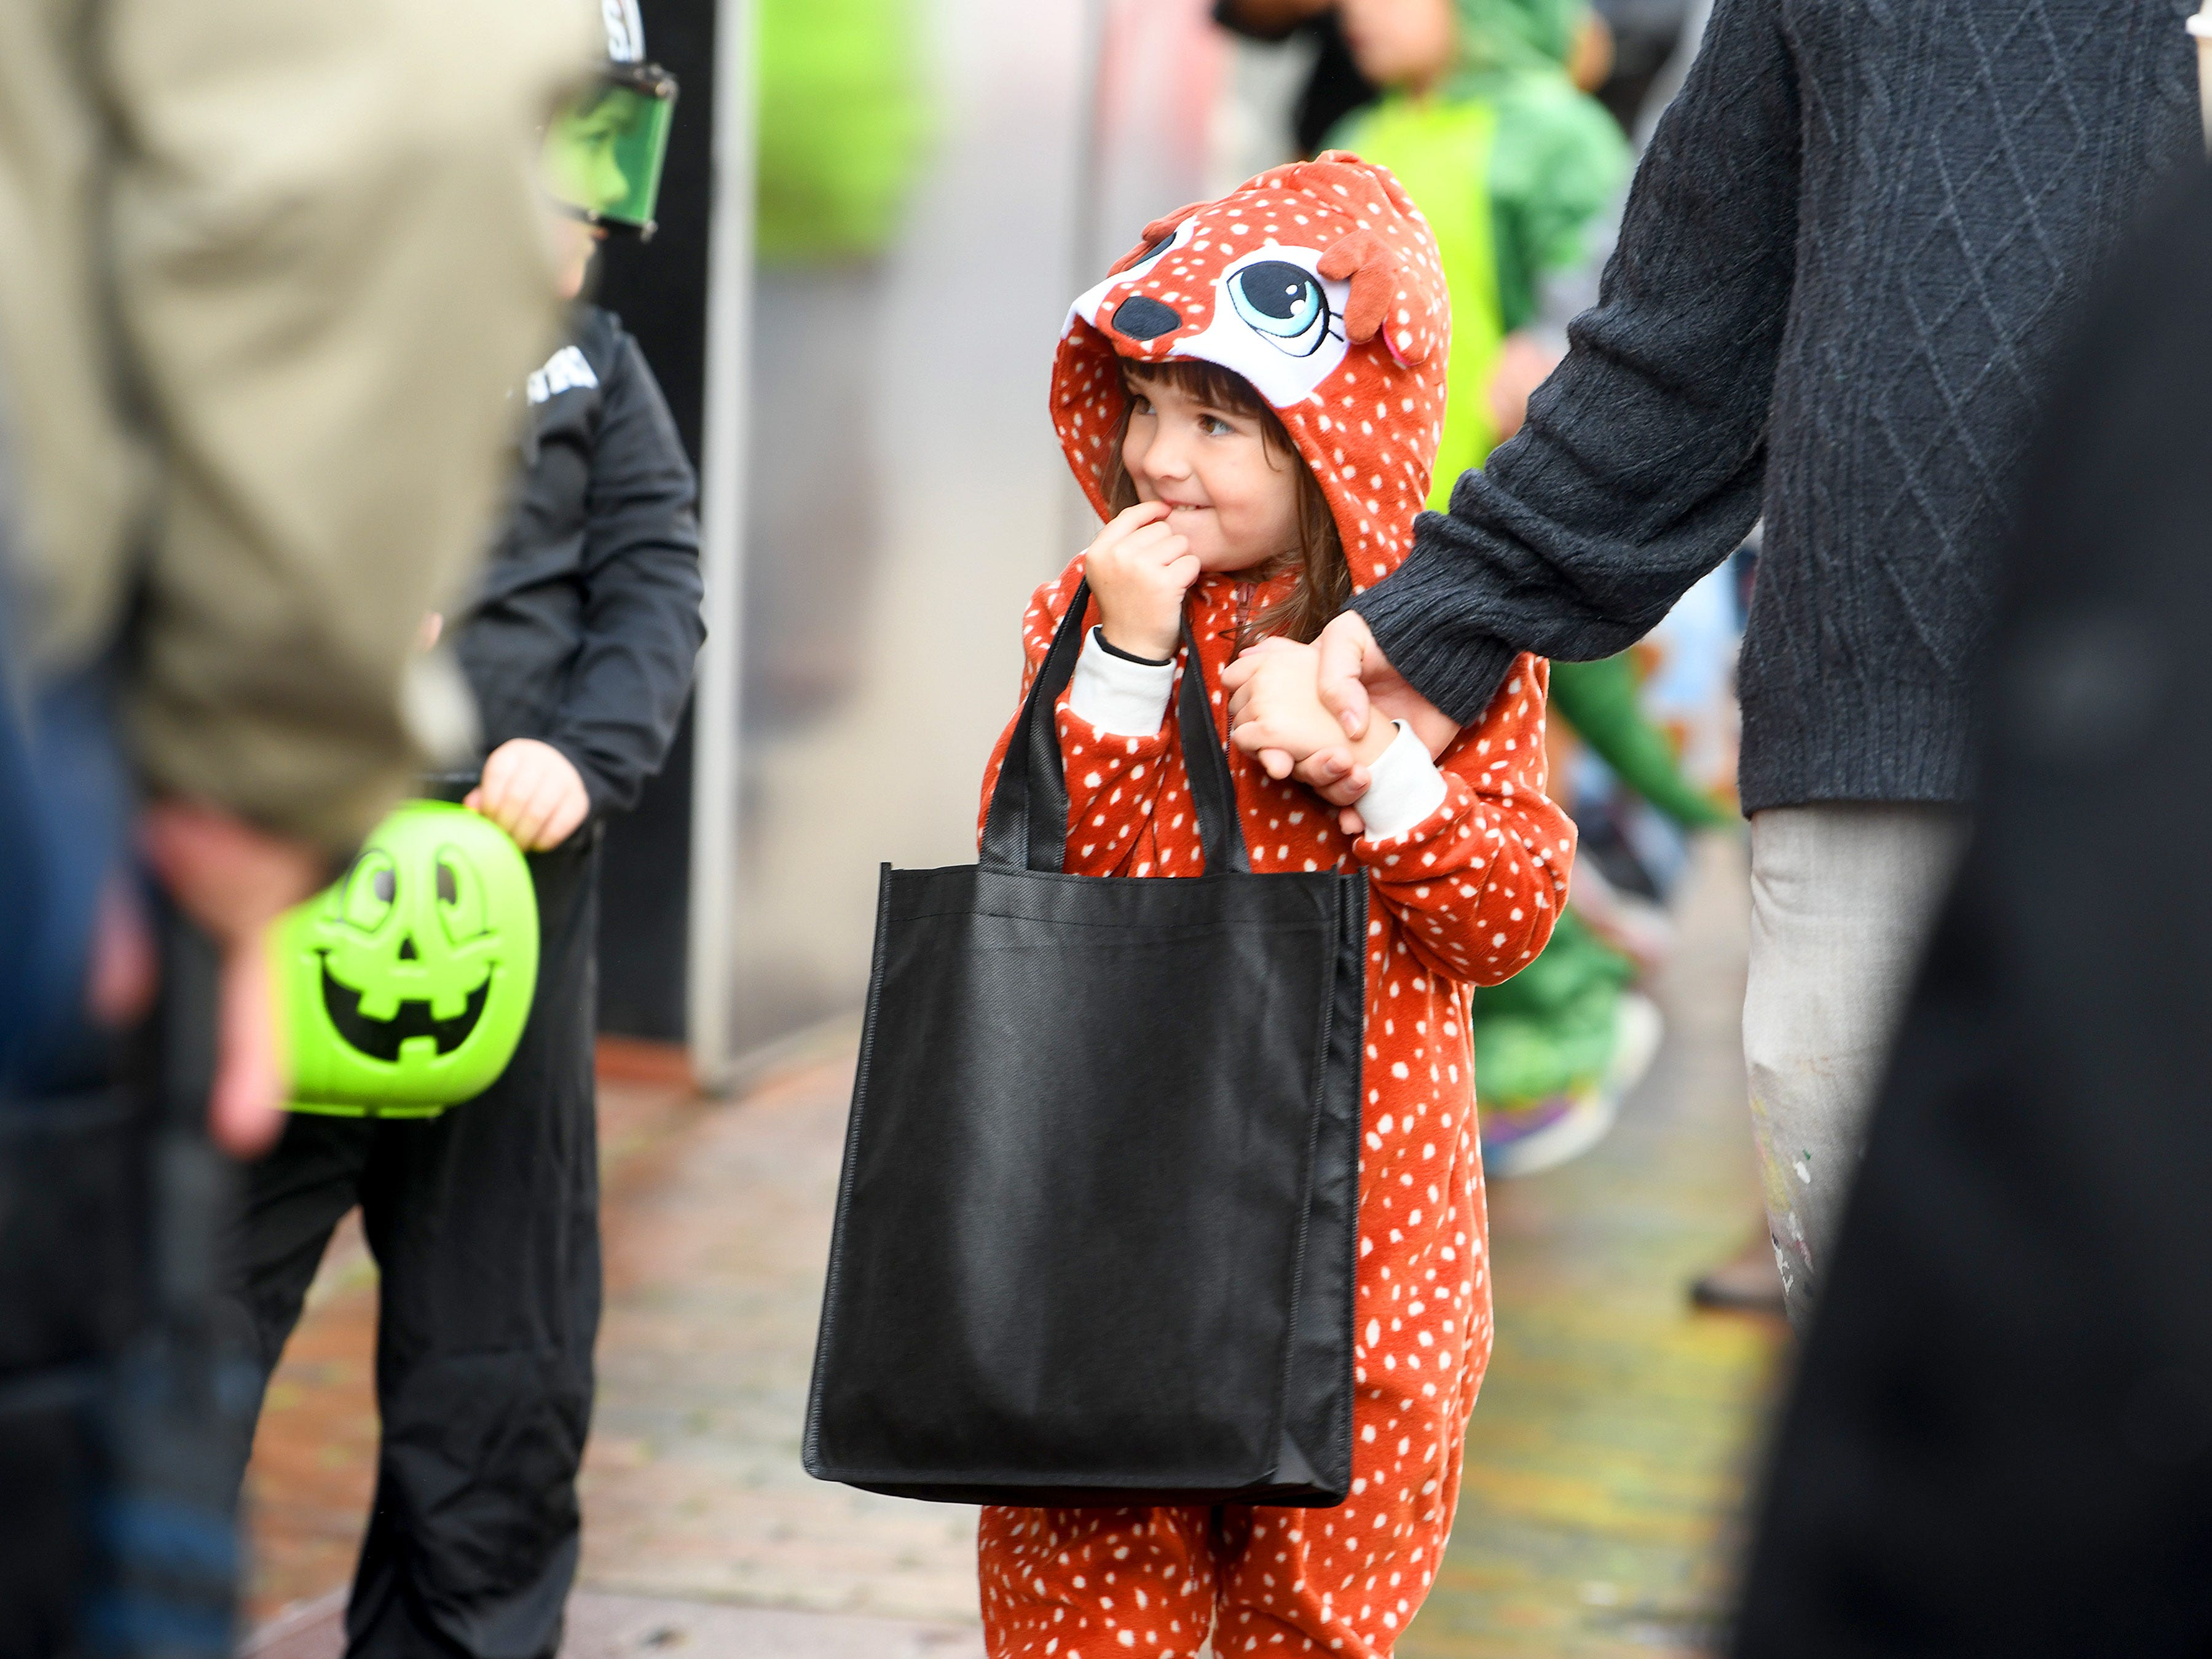 A young trick-or-treater smiles while holding onto her bag while trick-or-treating in downtown Staunton on Saturday, Oct. 27, 2018.